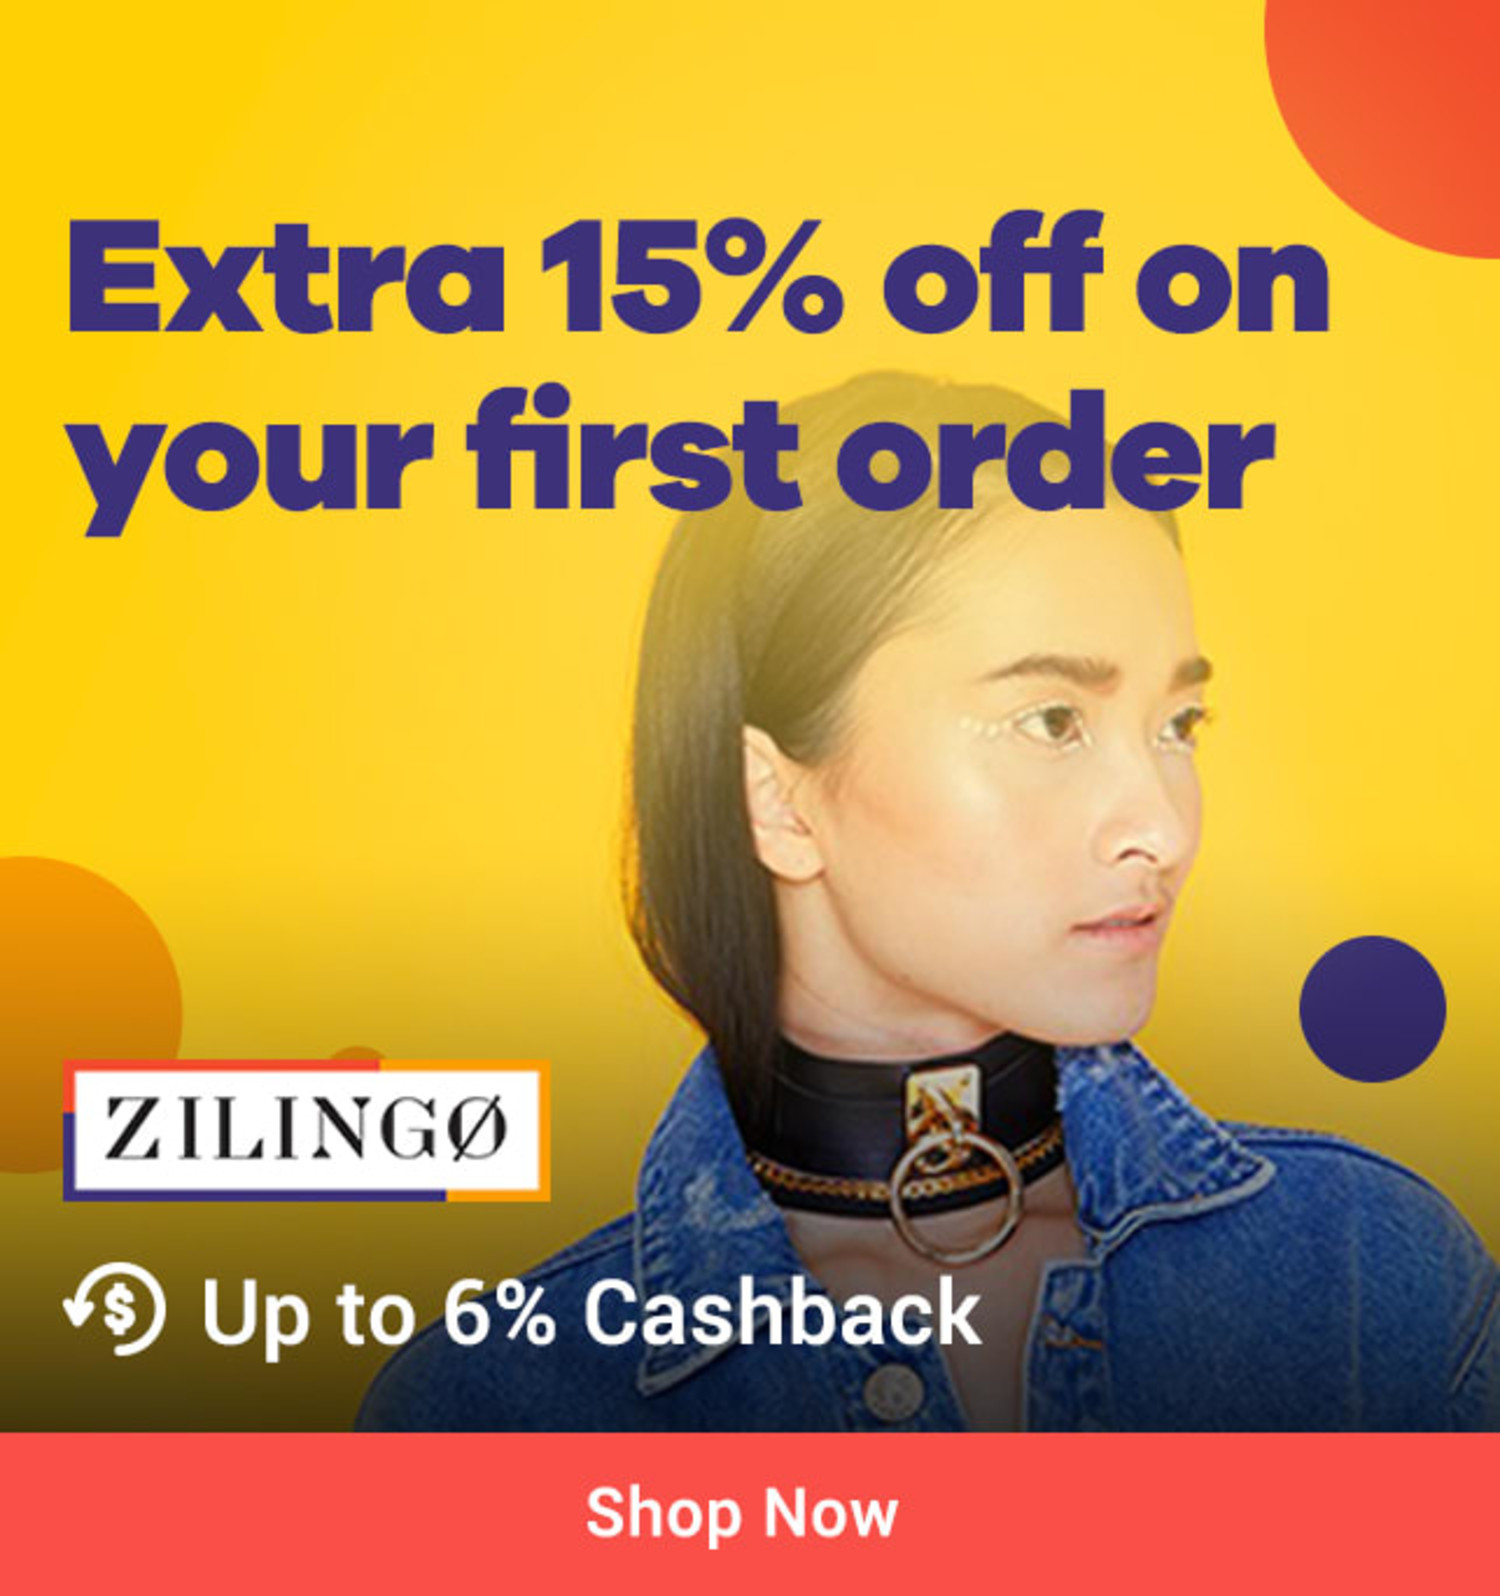 Zilingo Extra 15% off on your first order + Up to 6% Cashback